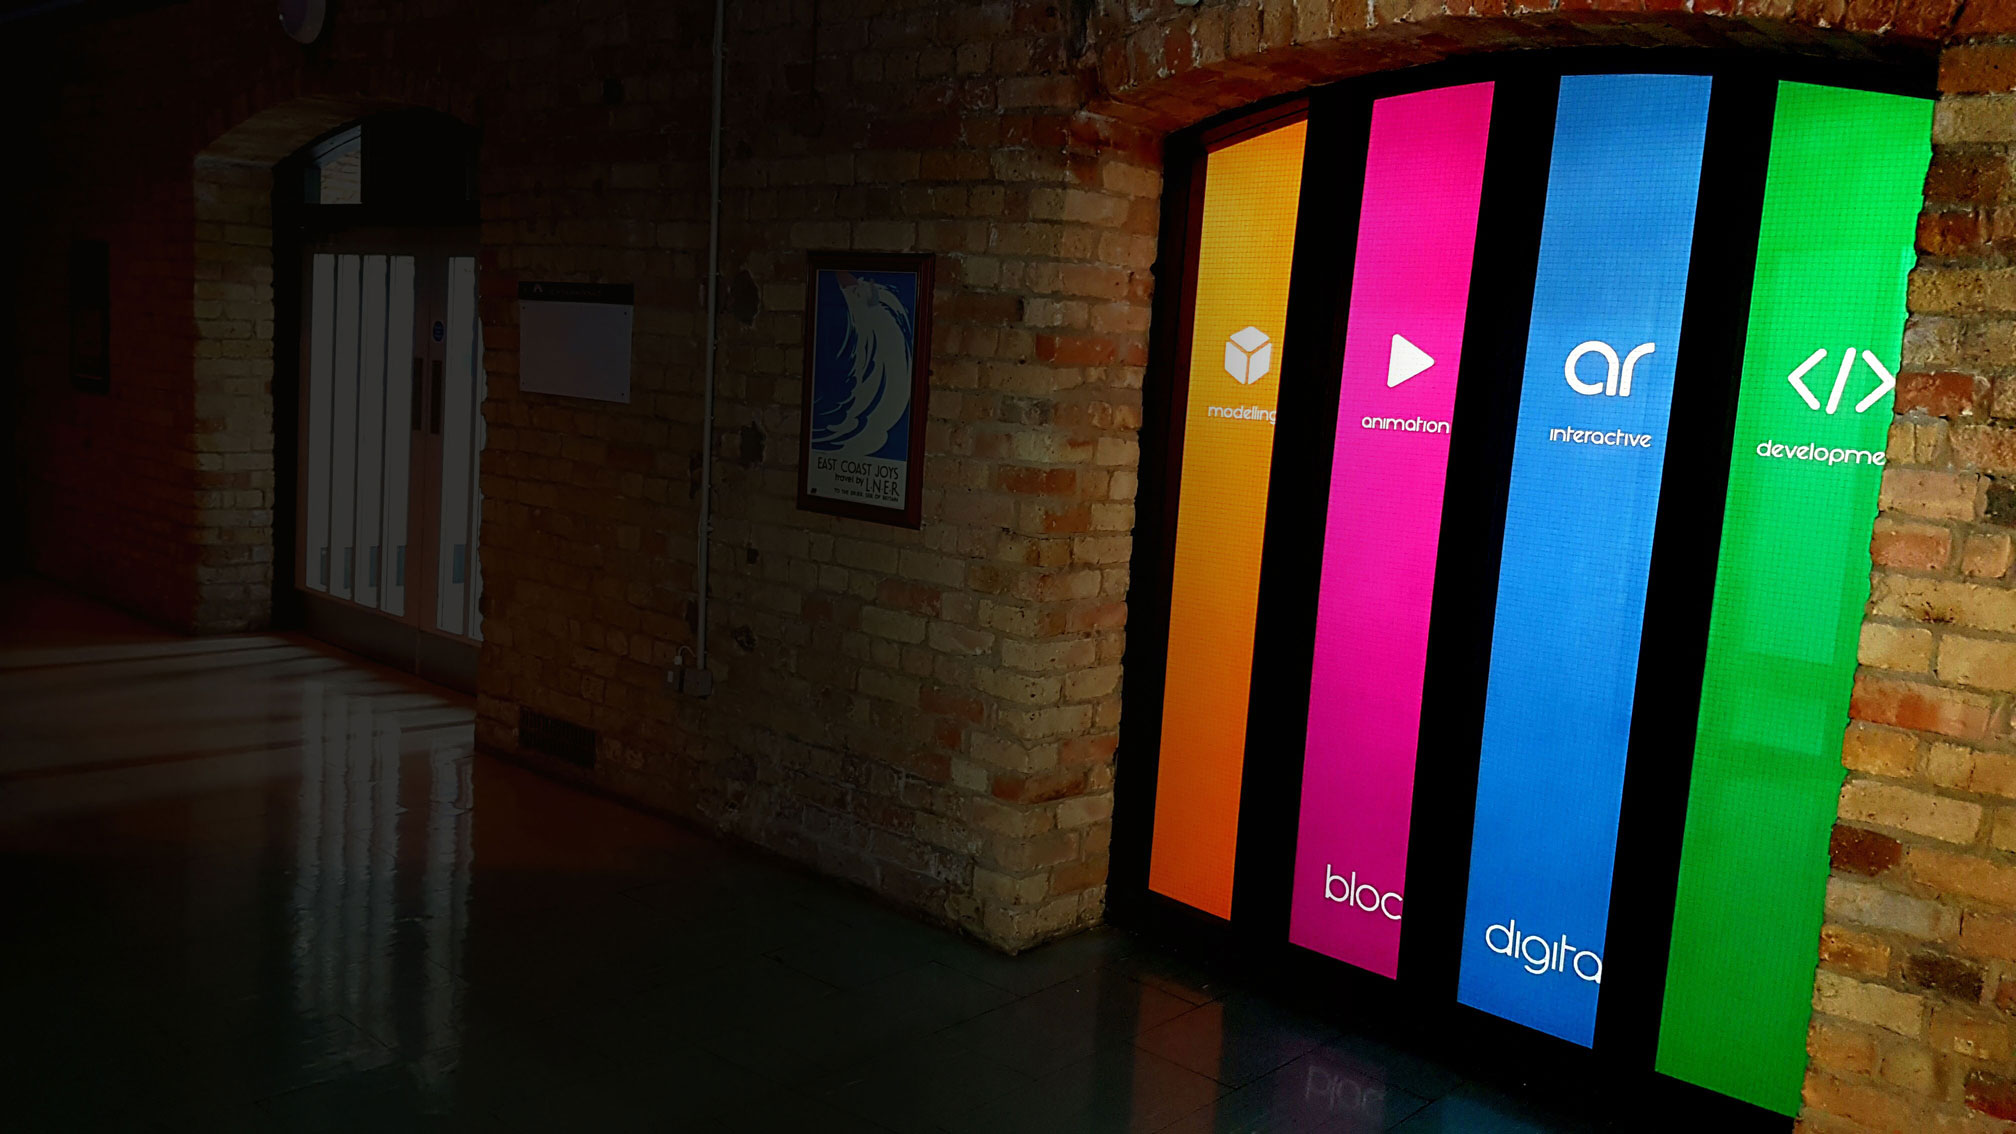 The offices of Bloc Digital